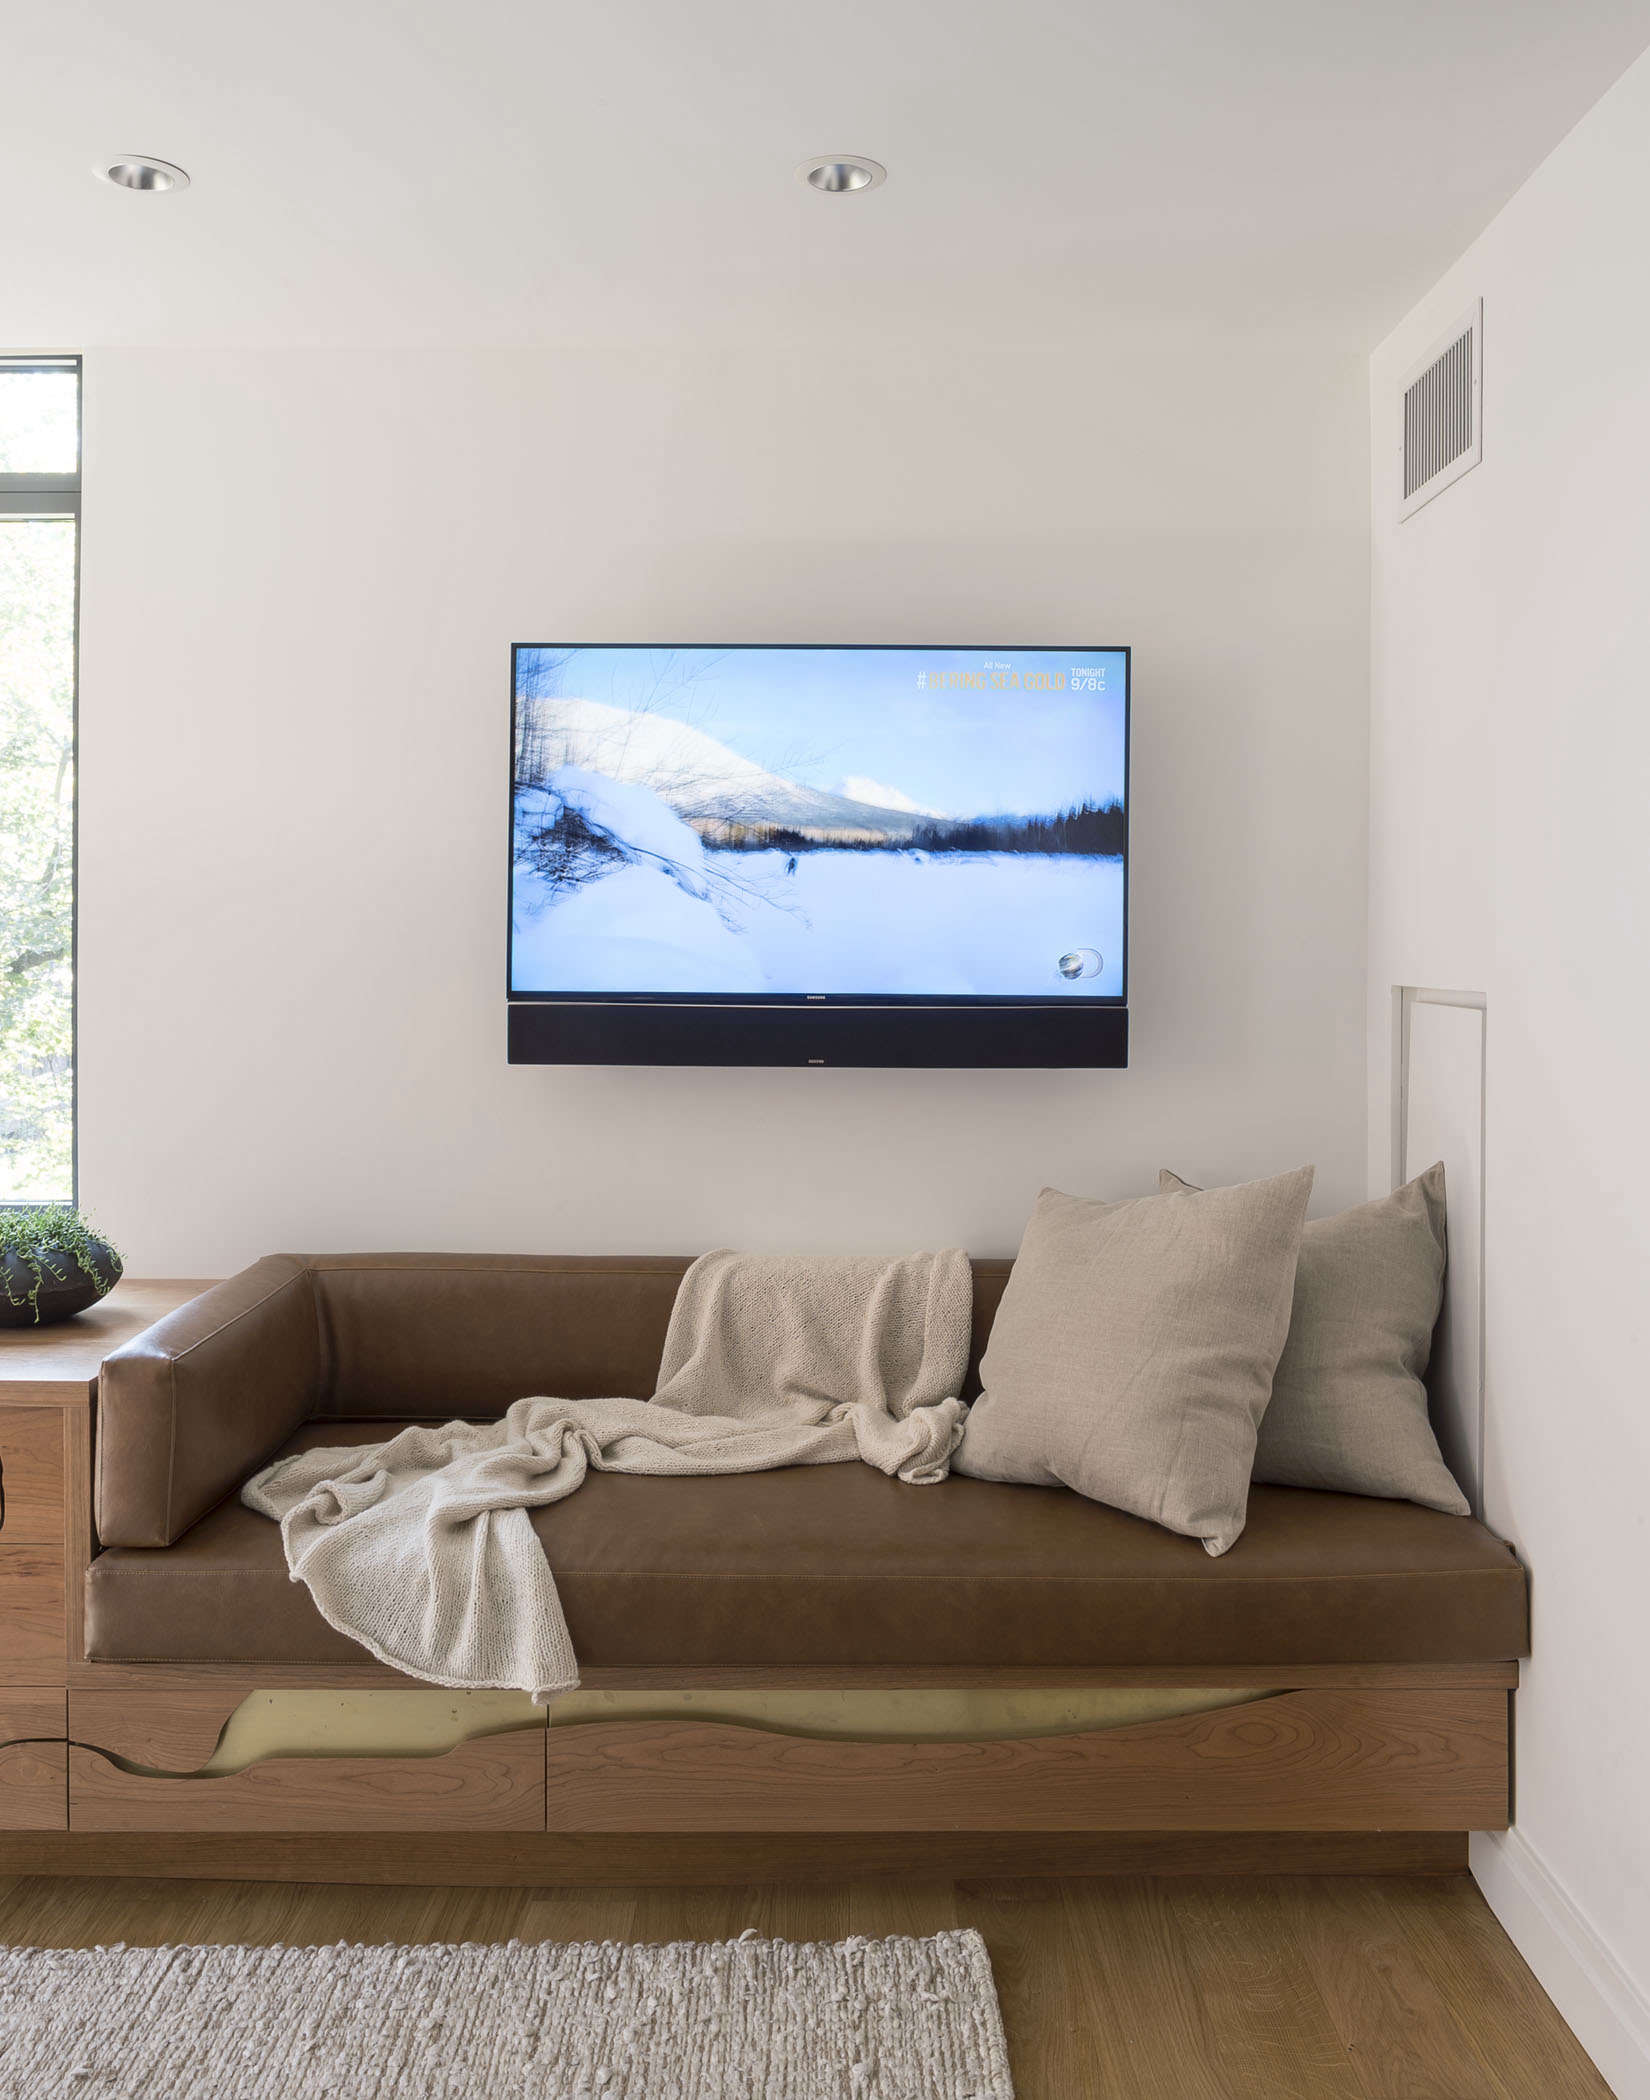 Custom built-in dog bed bench by Asher Israelow, Matthew Williams photo | Remodelista